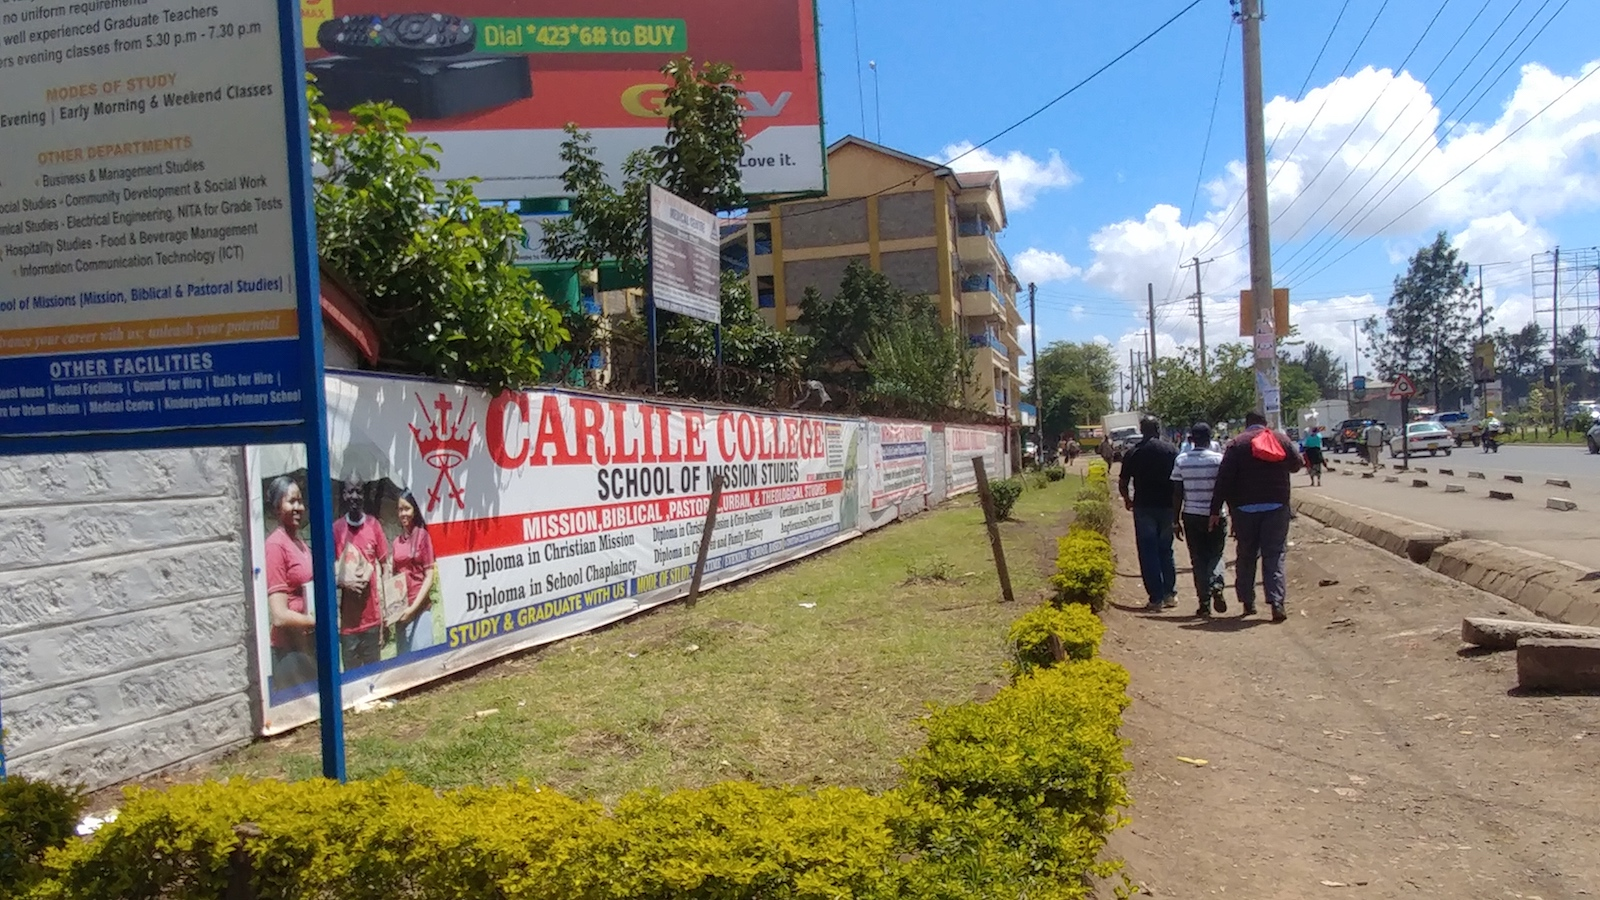 It might not look like much, but Carlile College in Nairobi, Kenya has an excellent reputation for training clergy and evangelists.